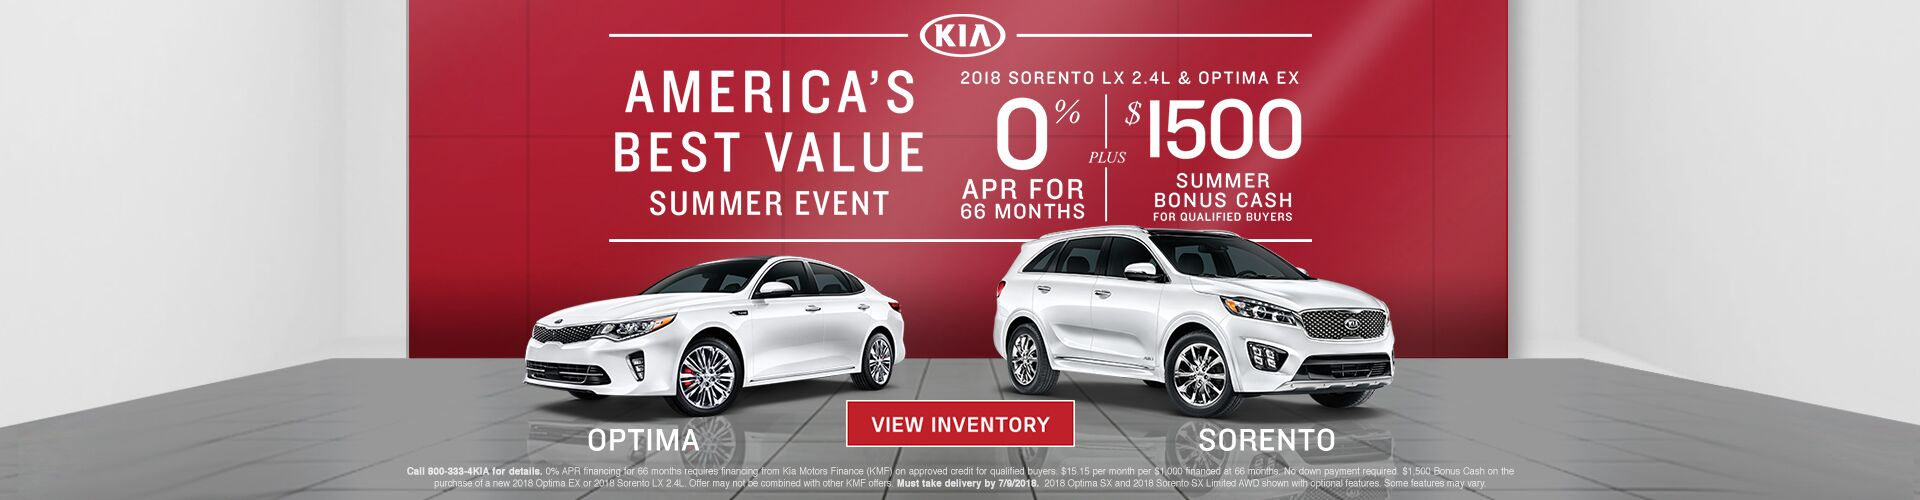 America's Best Value Summer Event at Kia Marin